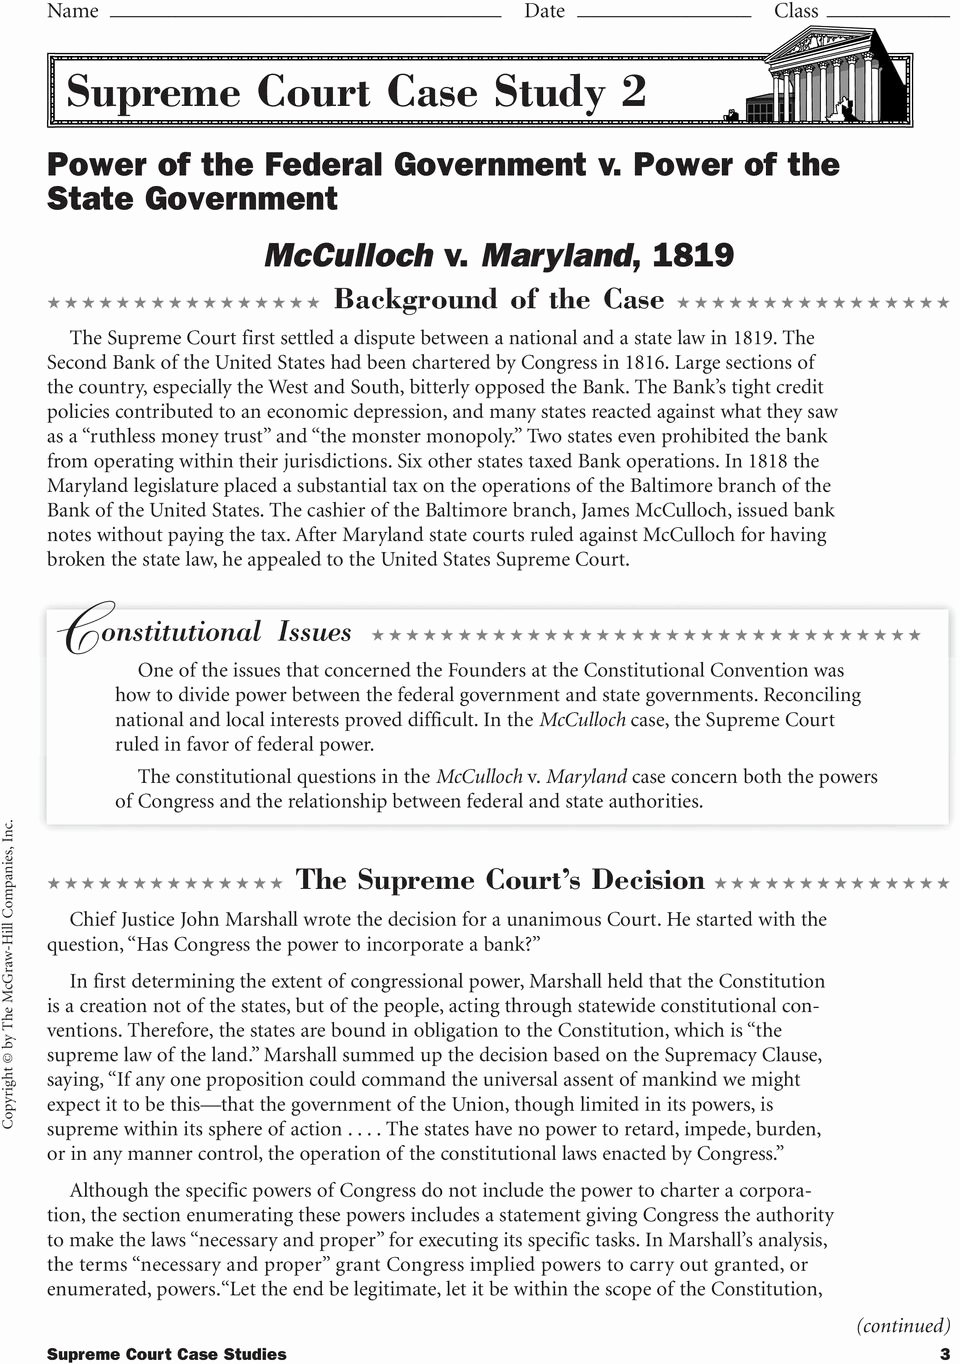 Supreme Court Cases Worksheet Answers Lovely Supreme Court Case Stu S Pdf